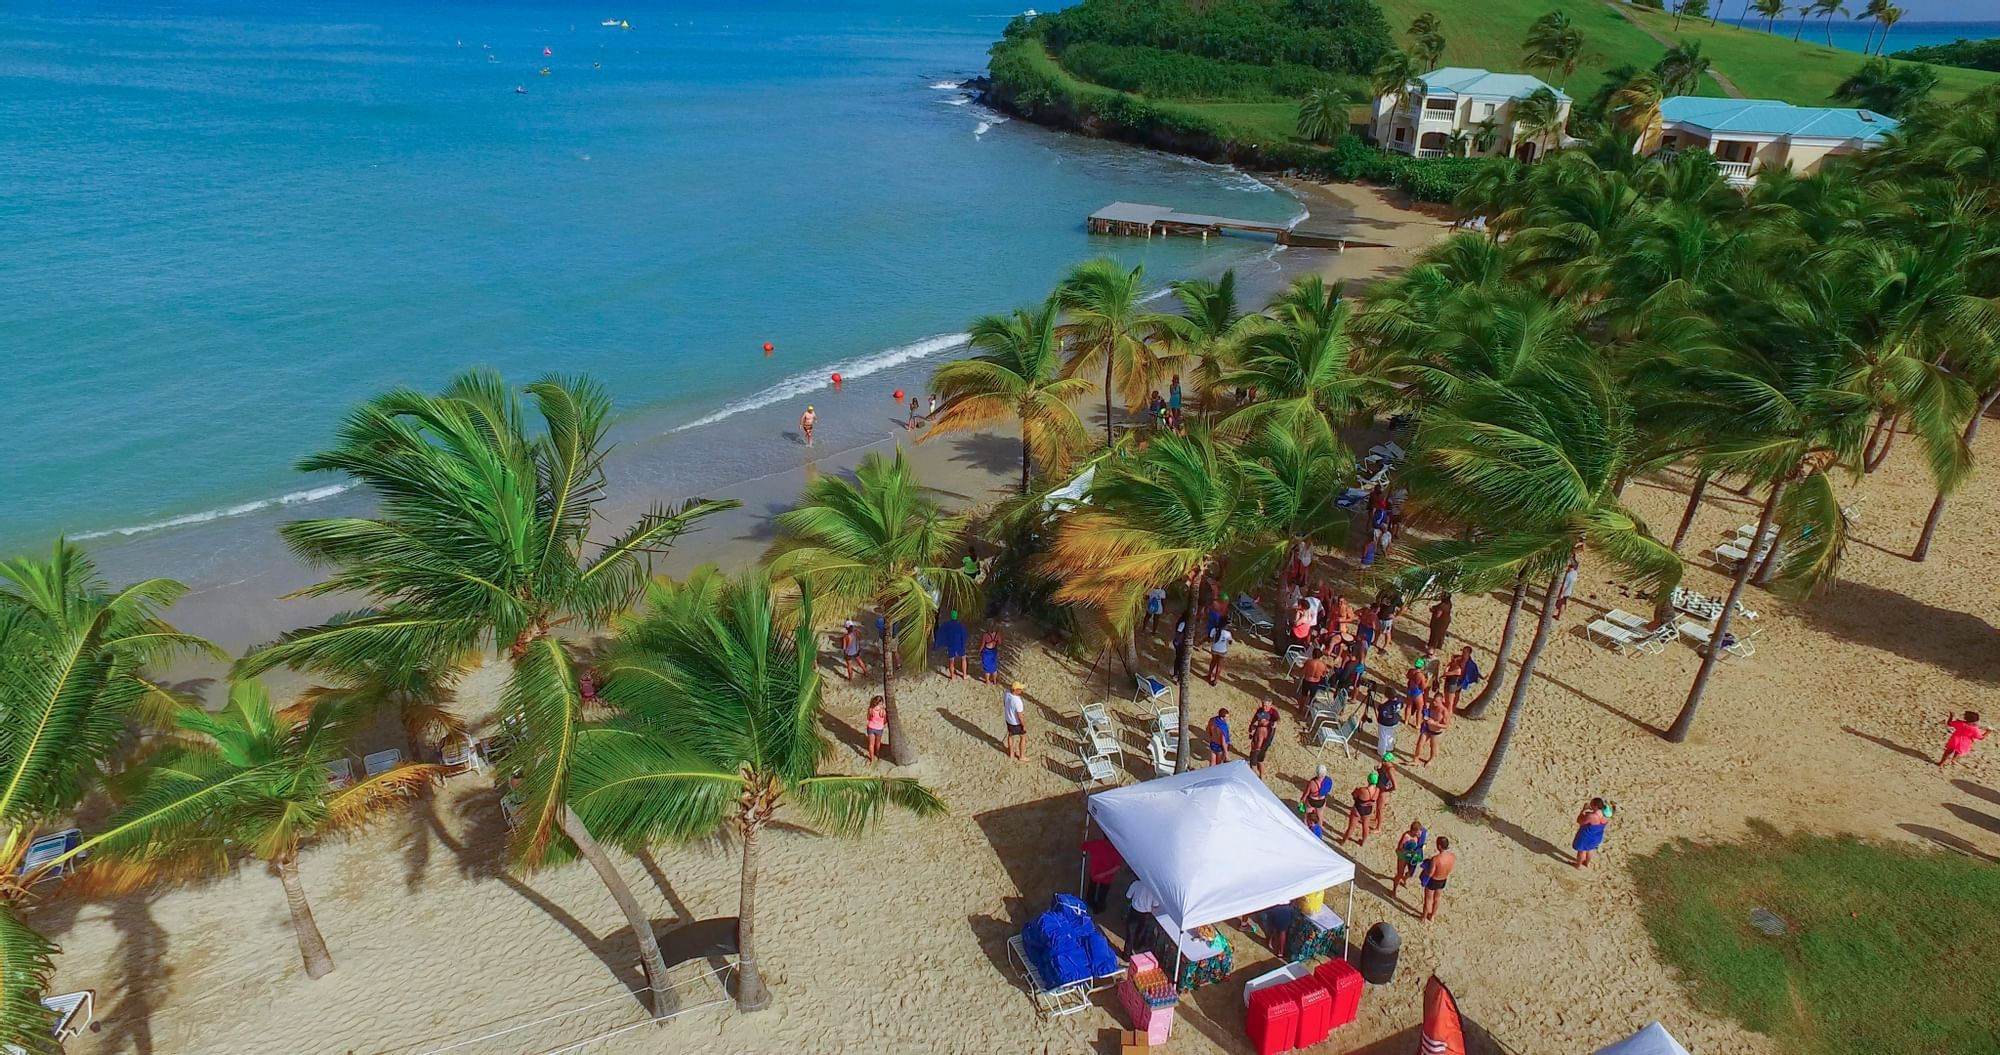 Aerial view of Mermaid Beach with crowds gathering